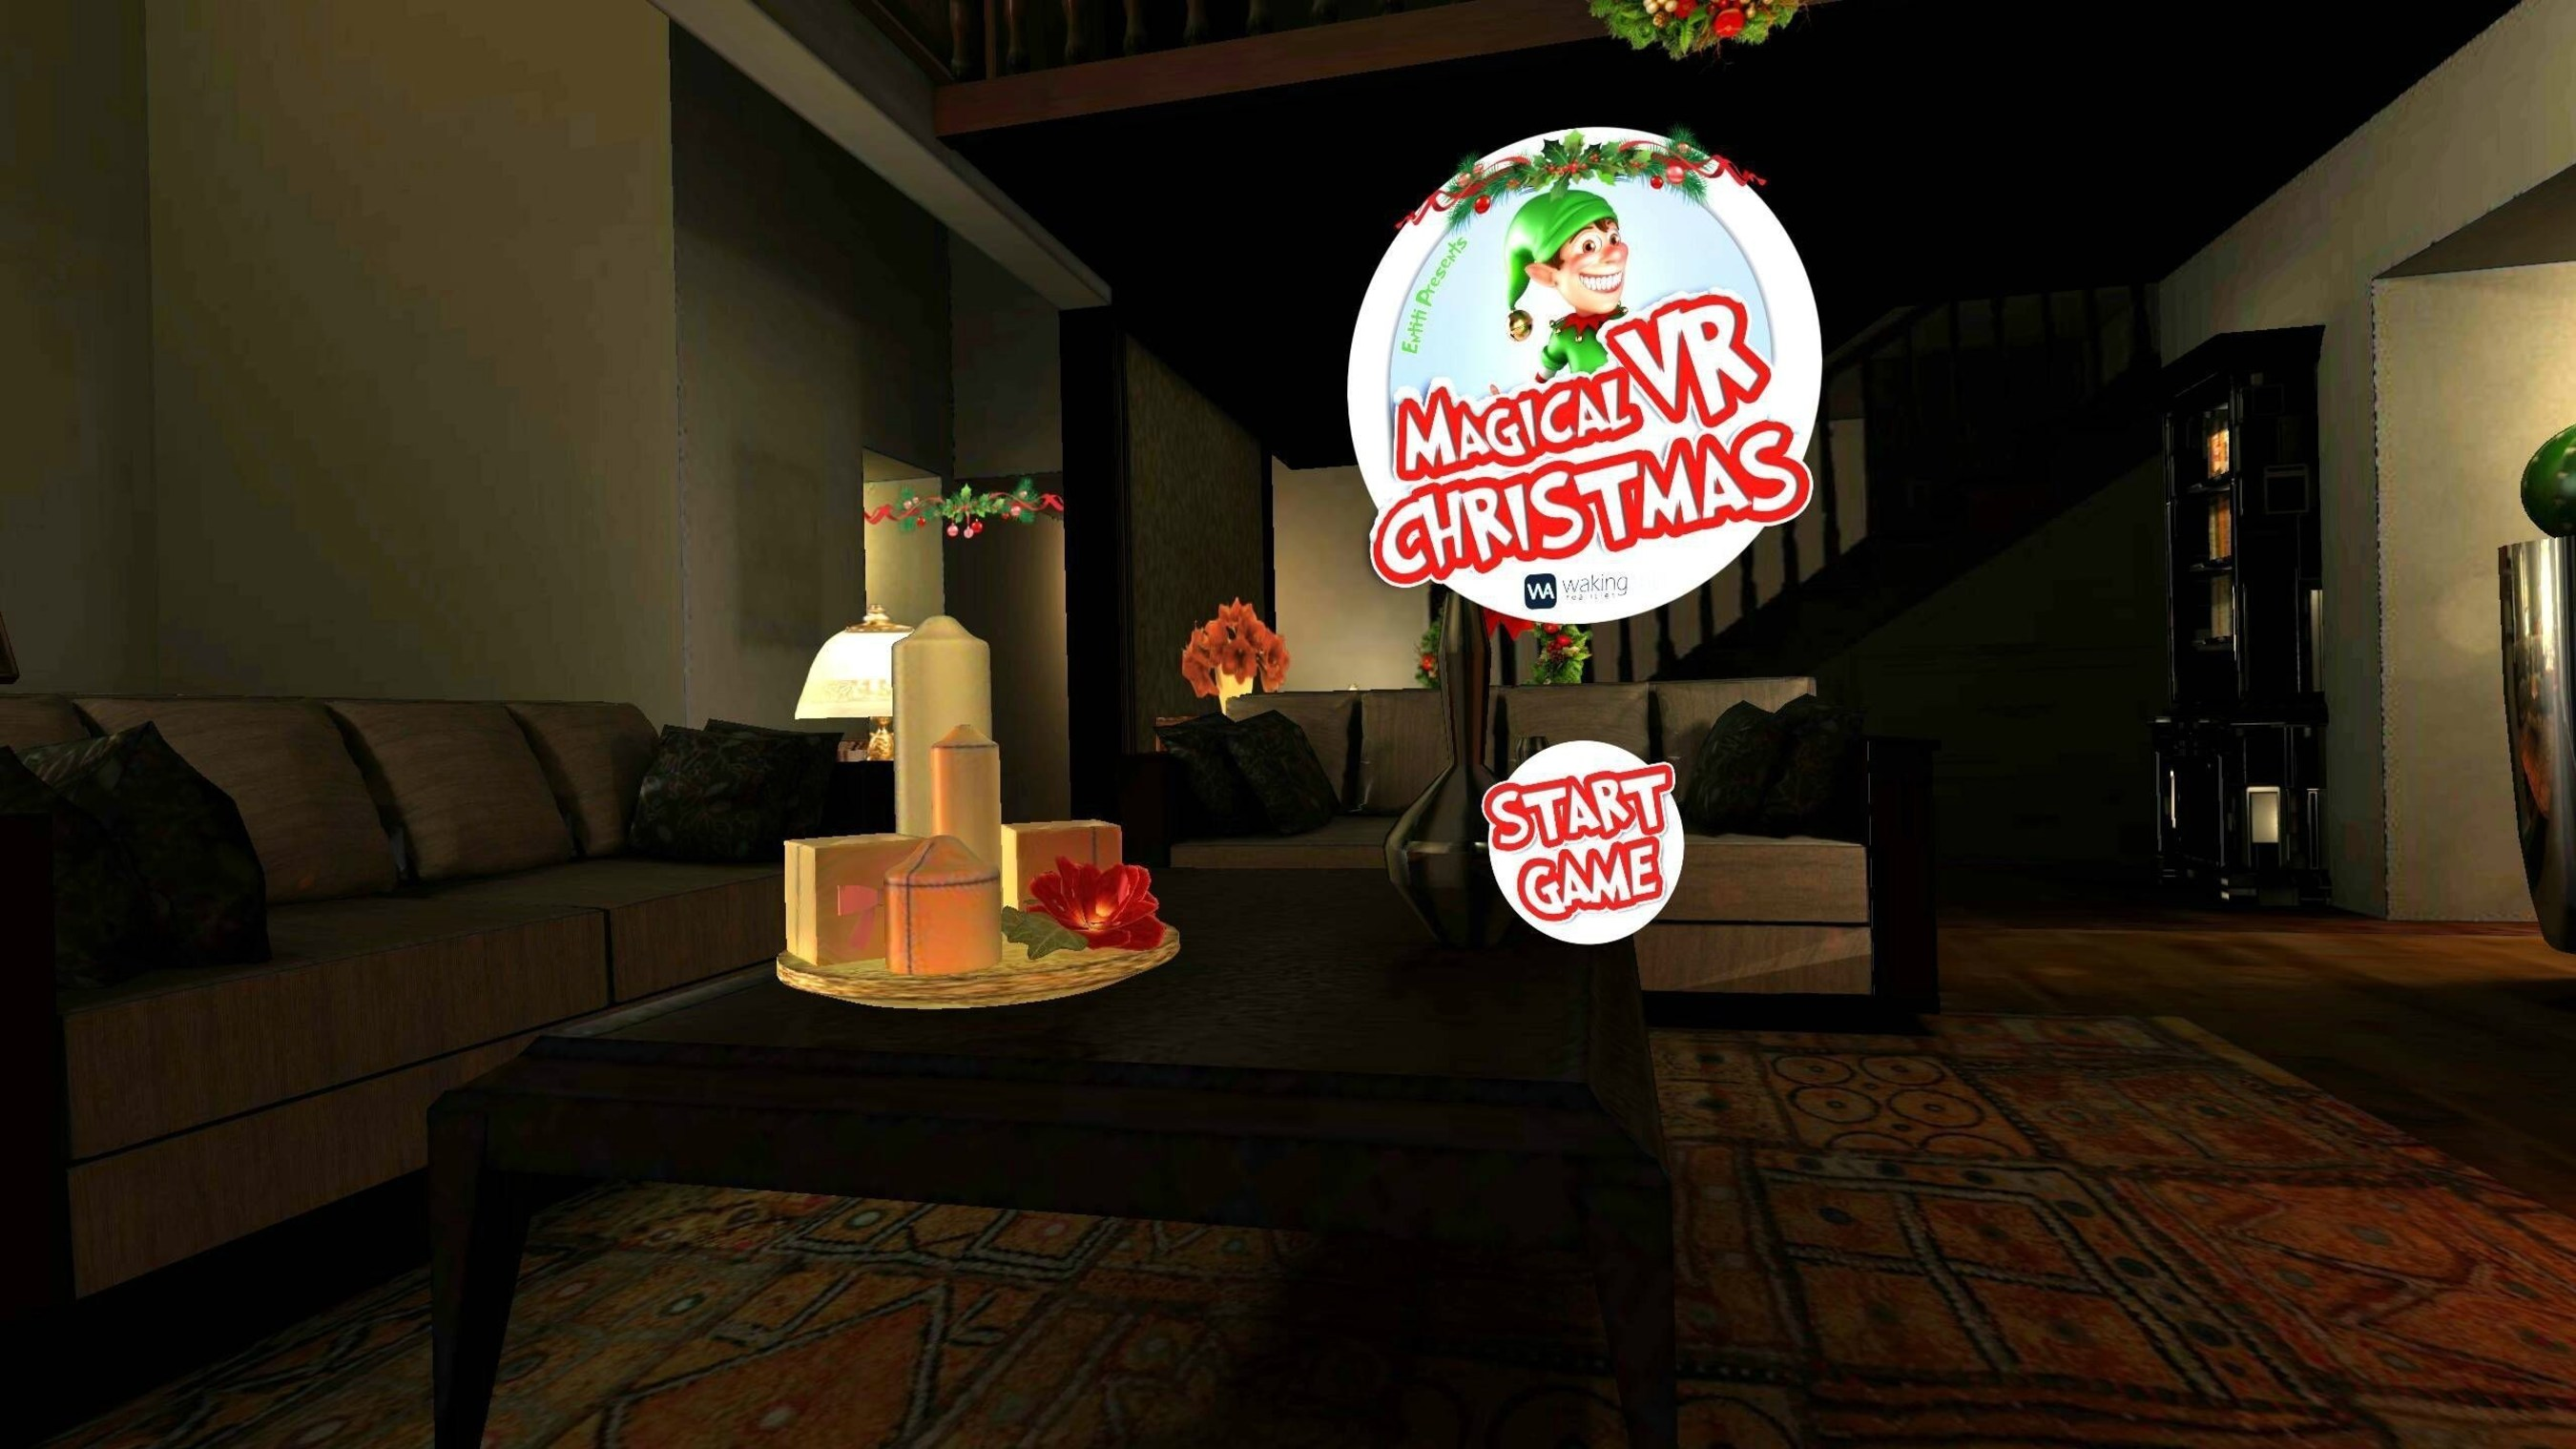 Screenshot from WakingApp's Magical VR Christmas experience, now available on ENTiTi Viewer for iPhone and Android.